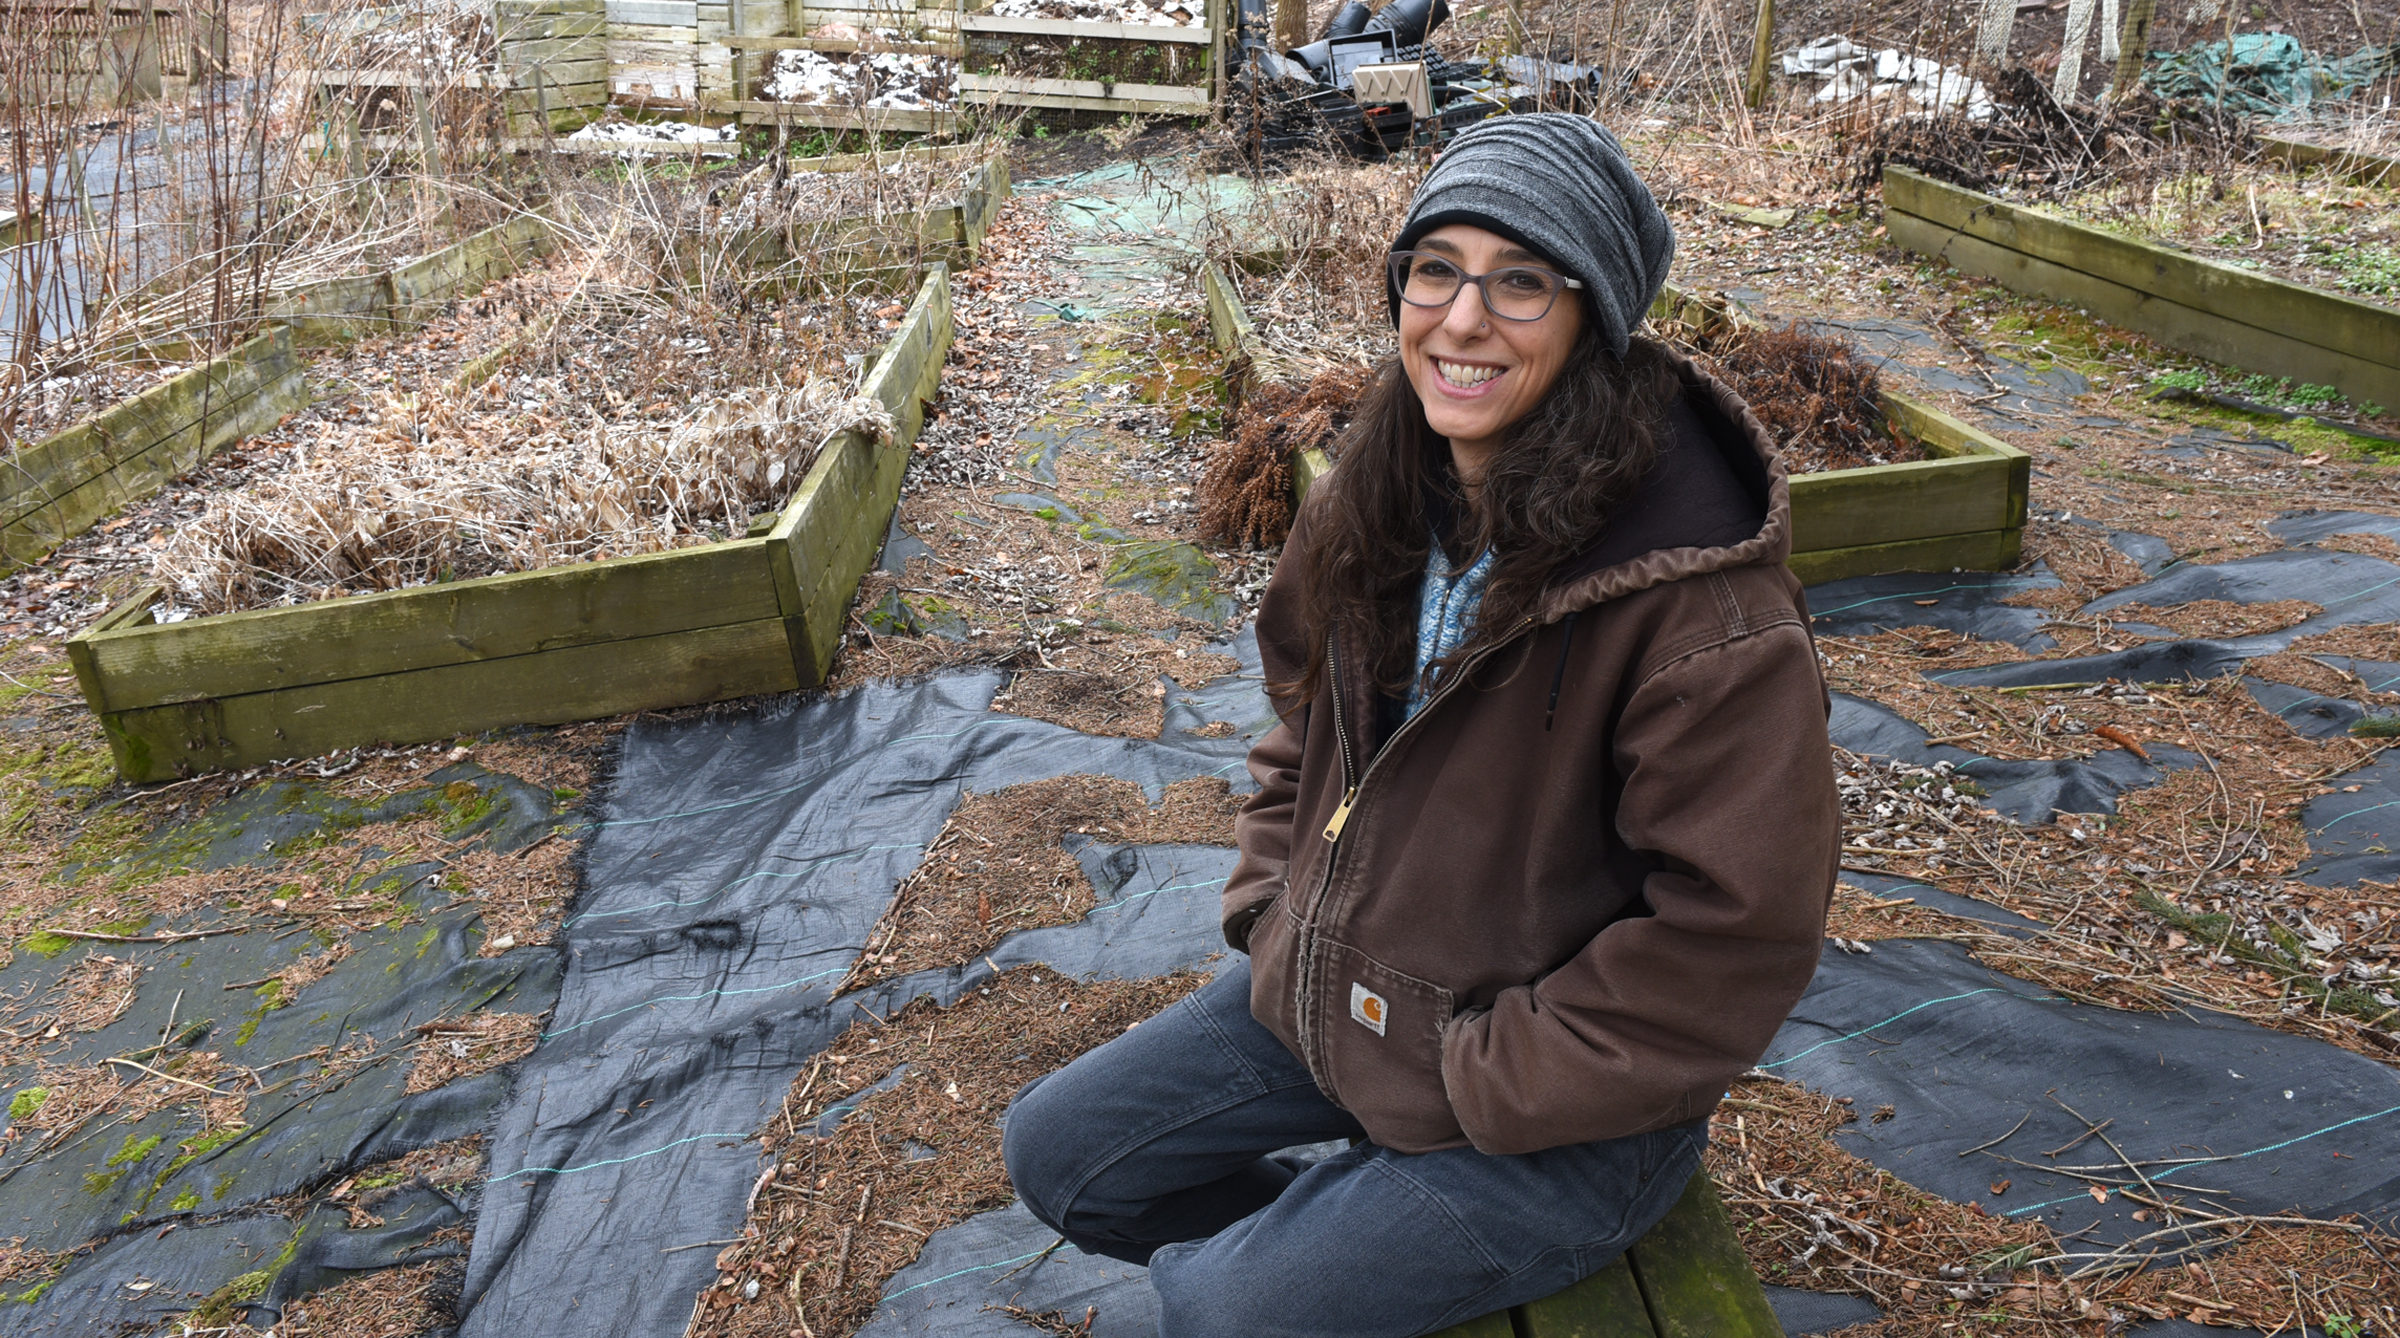 Roxanne Swan is coordinator of the Audubon Center for Native Plants at Beechwood Farms along with being an environmental botanist and horticulturist.